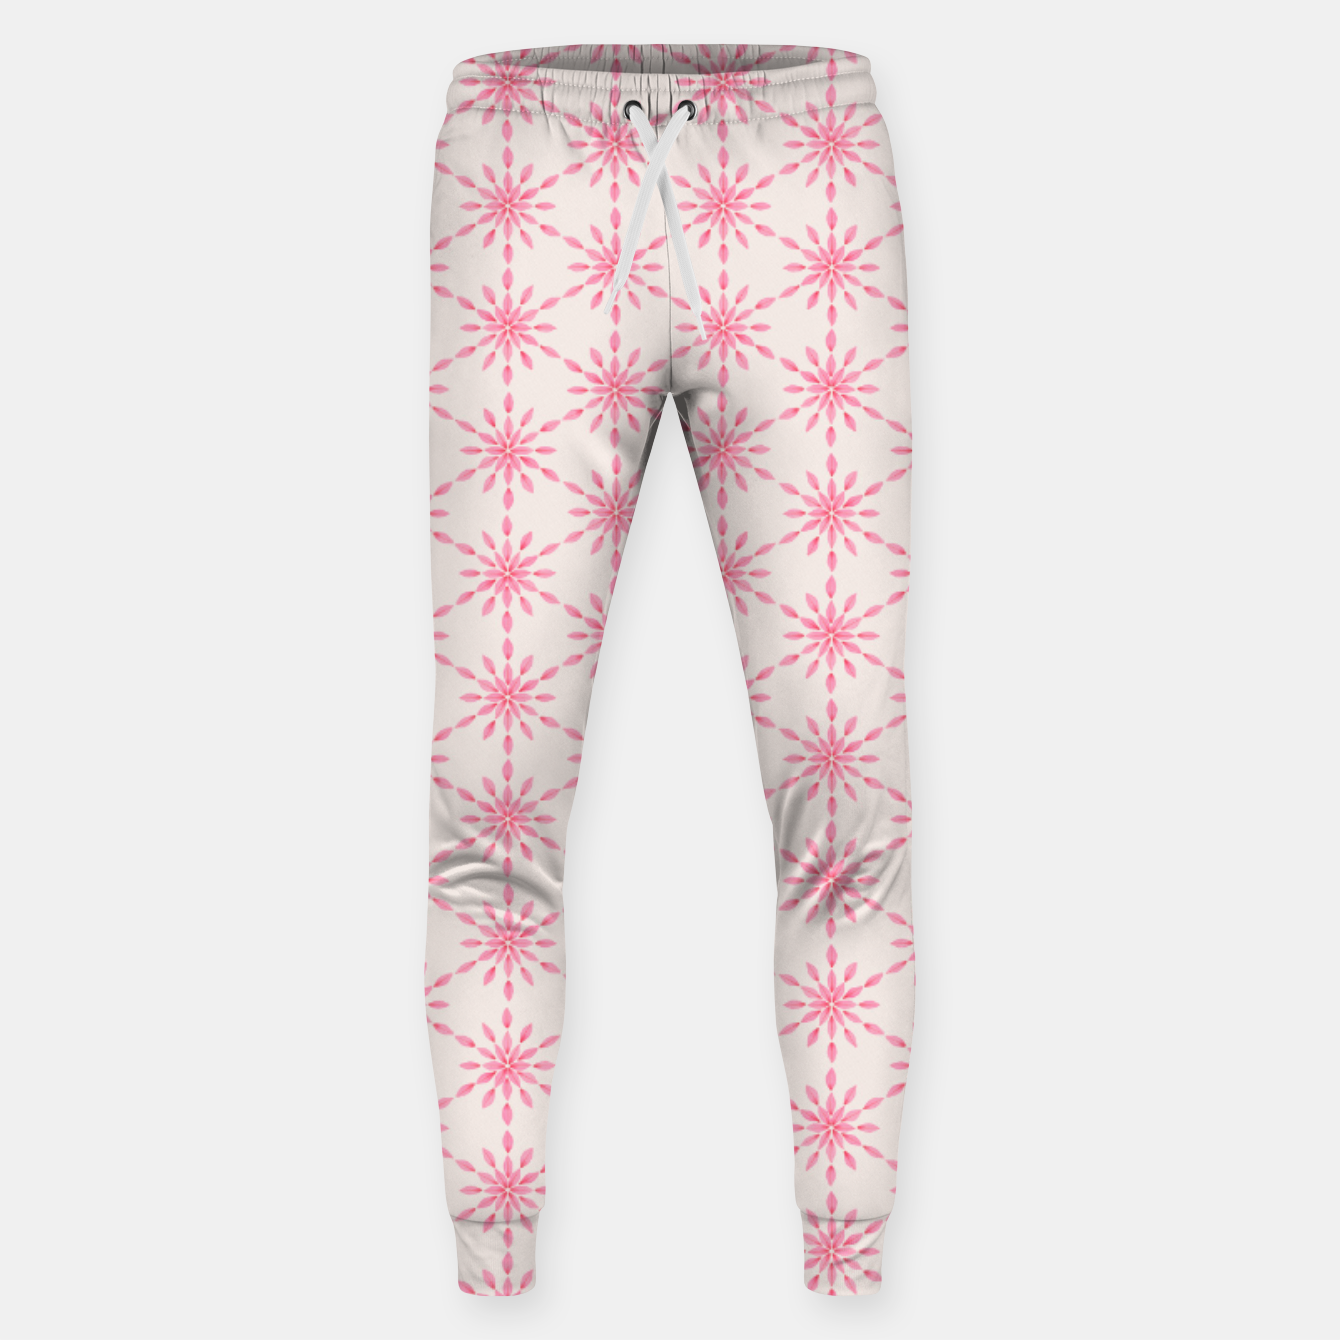 Zdjęcie Simple Pretty Hand Painted Watercolor Snowflakes / Flowers, Winter Holiday Pattern in Blush, Rose, Pink Sweatpants - Live Heroes